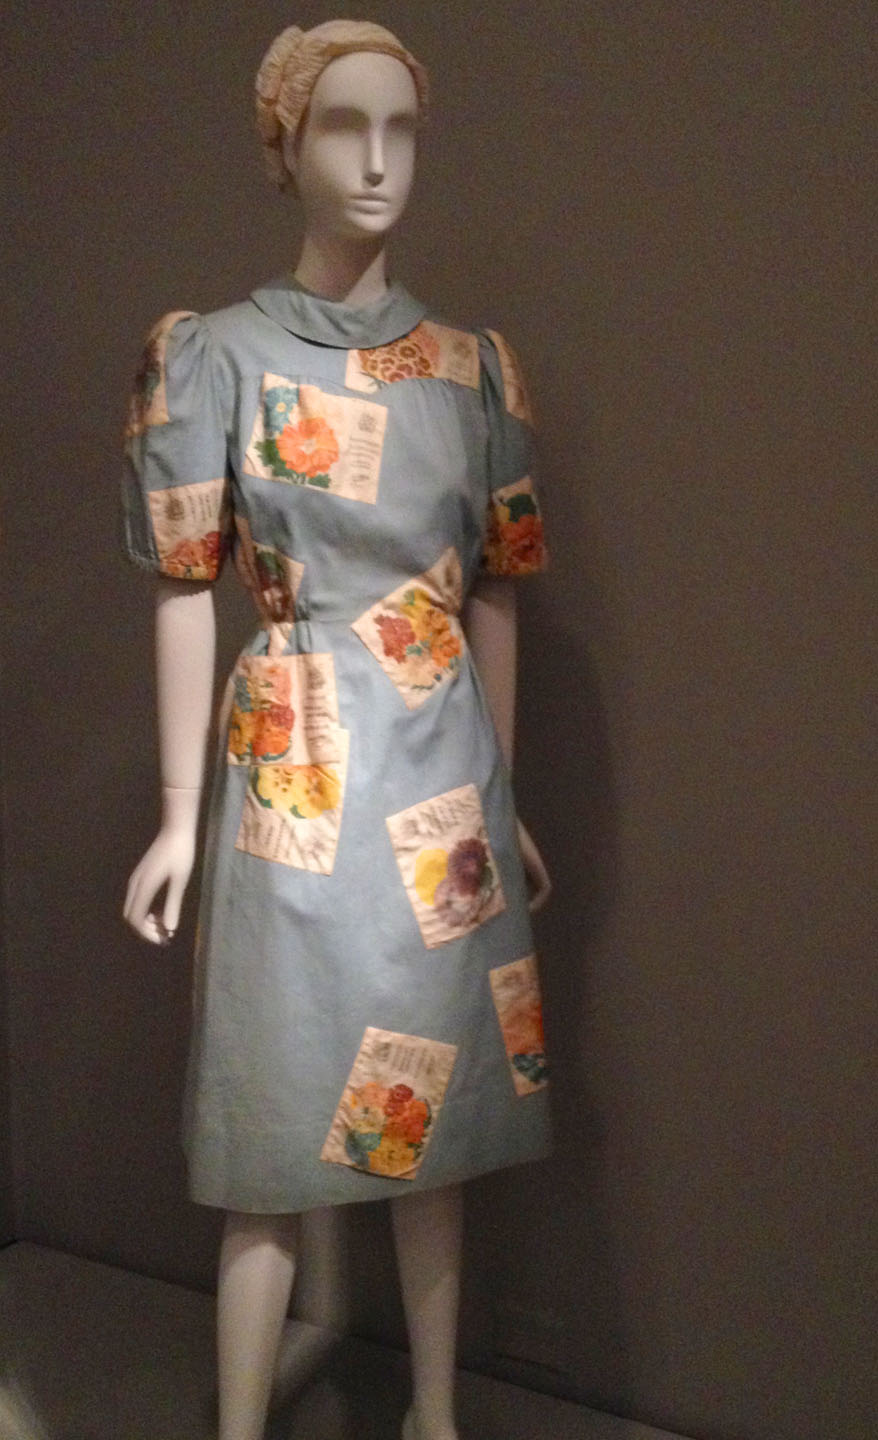 schaiperelli-blue-seed-packet-dress-1939.jpg